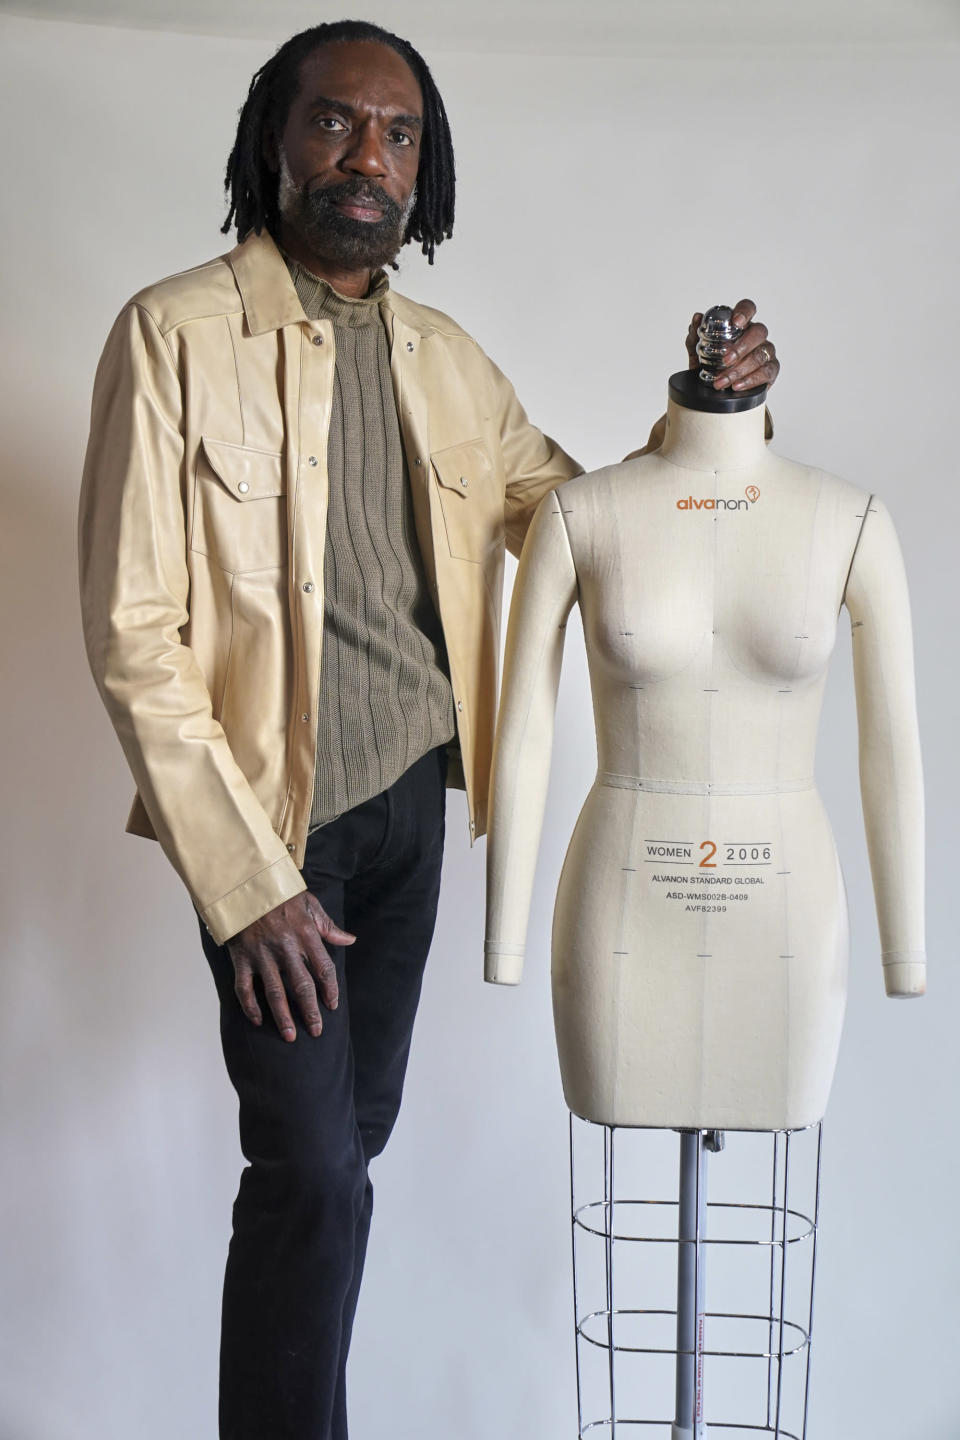 Fashion designer Kevan Hall pauses for a picture at his haute couture atelier in West Los Angeles Thursday, March 18, 2021. Fashion retailers and designers had dramatically shifted their offerings more toward casual clothes and away from dressier items since the pandemic. (AP Photo/Damian Dovarganes)